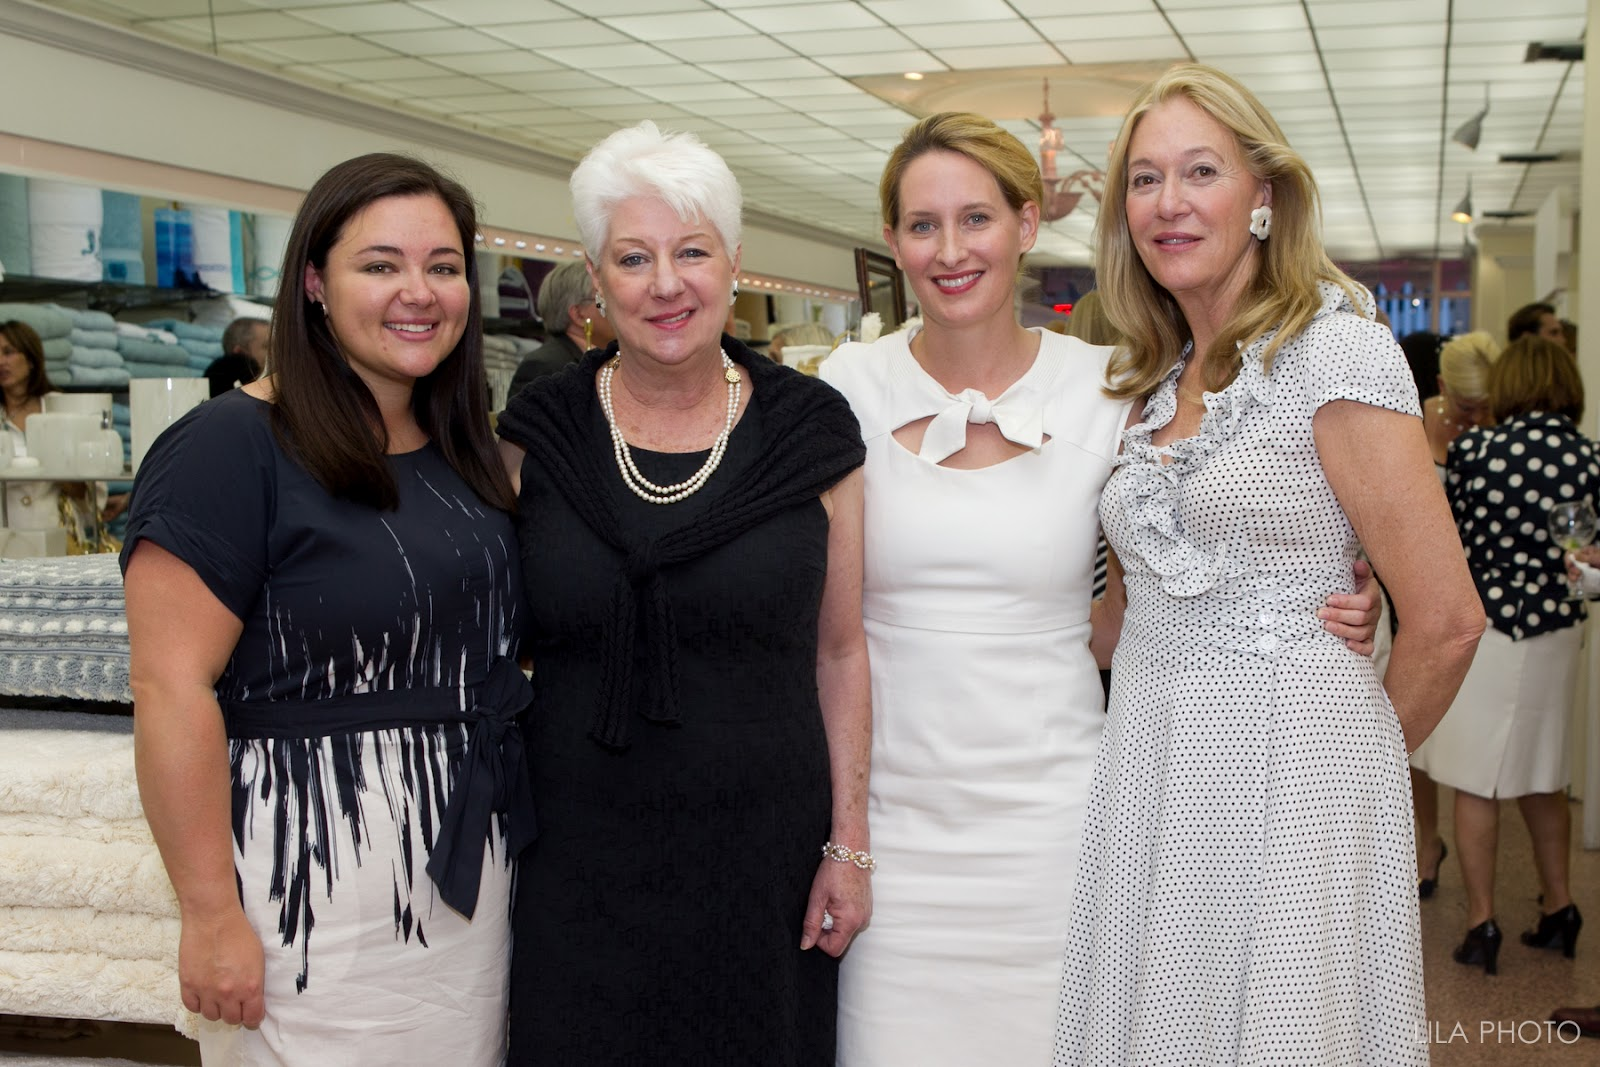 social style: celerie kemble book signing | palm beach lately